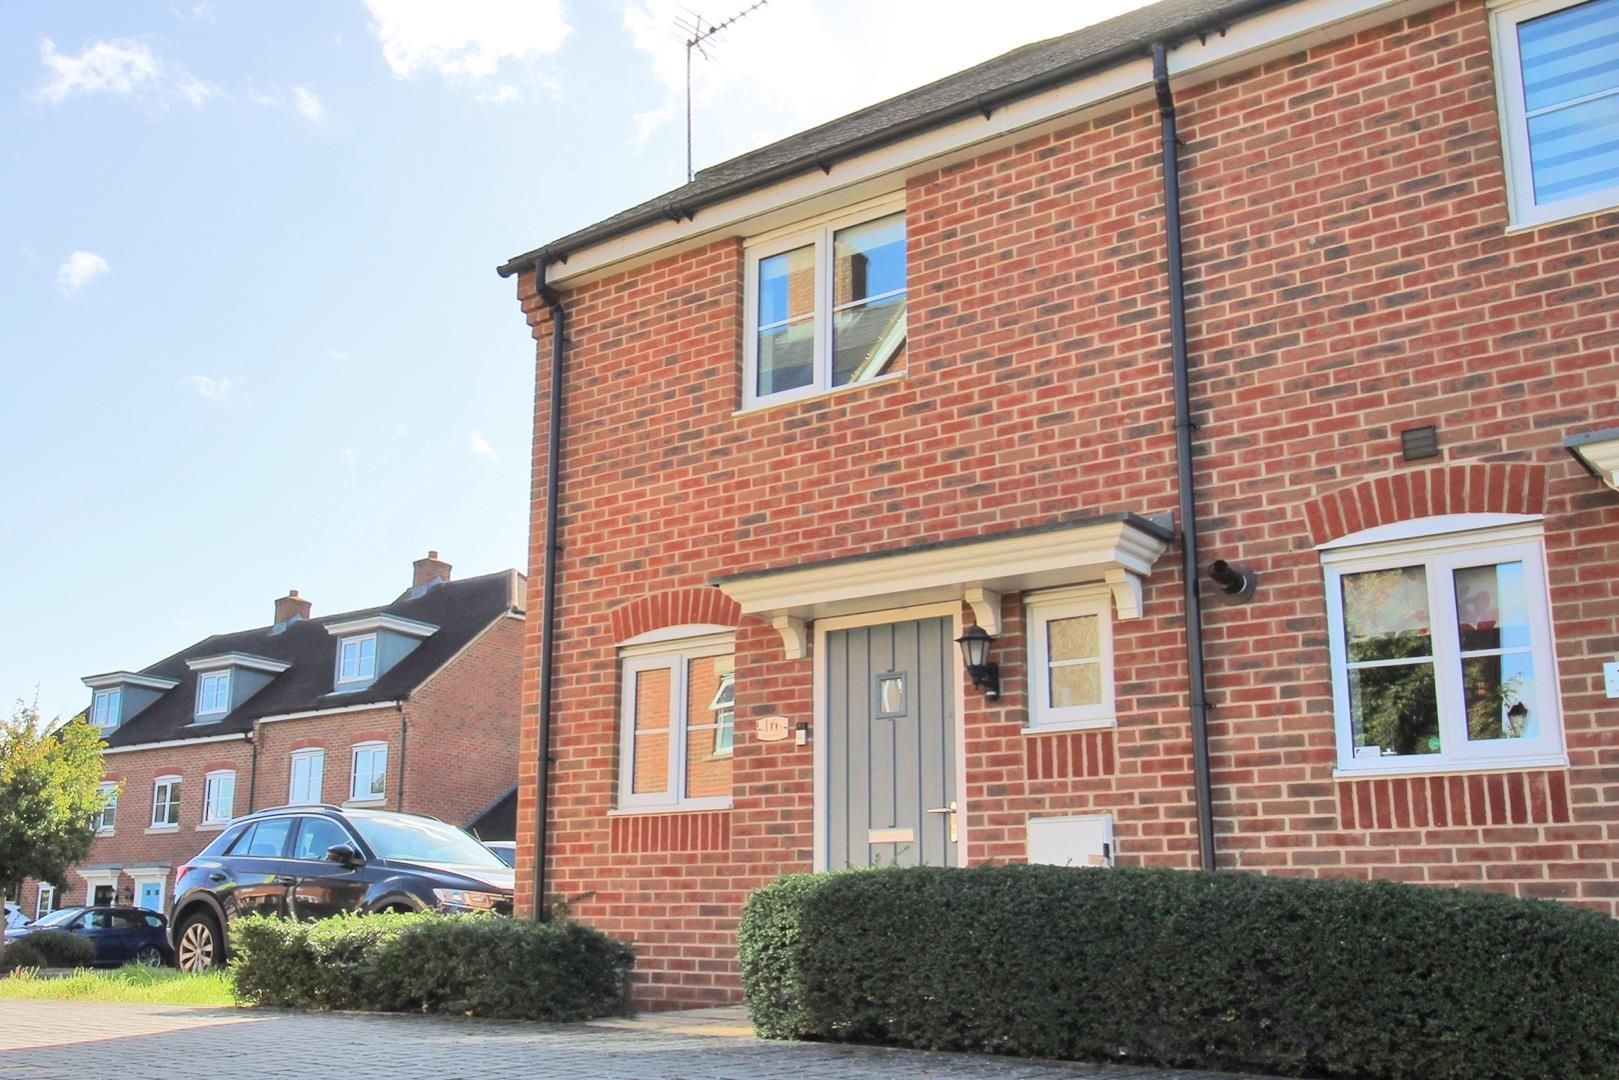 2 bed house for sale in Wykery Copse, RG12